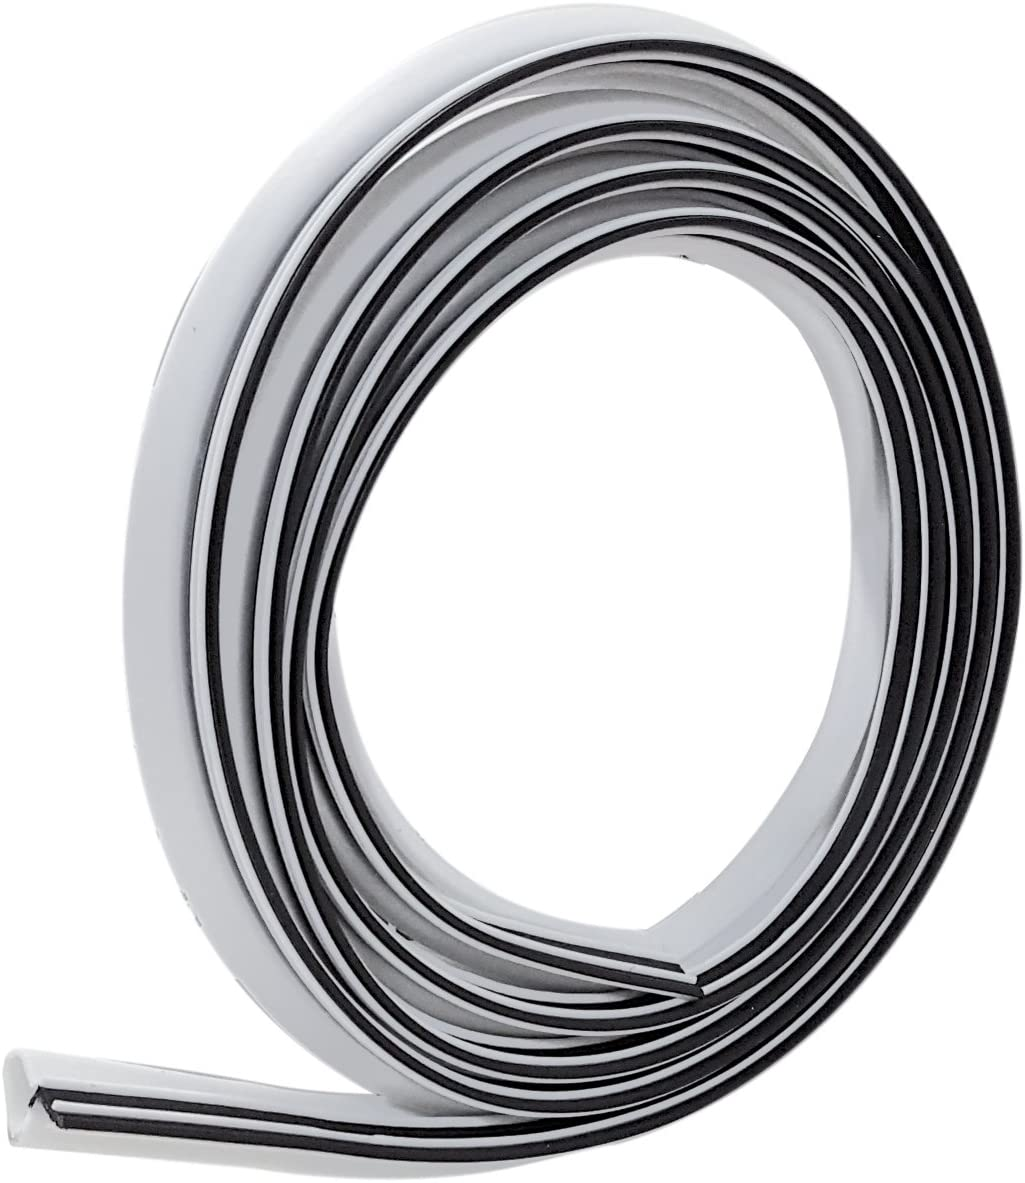 Frost King ES184W Weatherseal Replacement, 1/2In Wide x 3/4In Thick x 7Ft Long, White